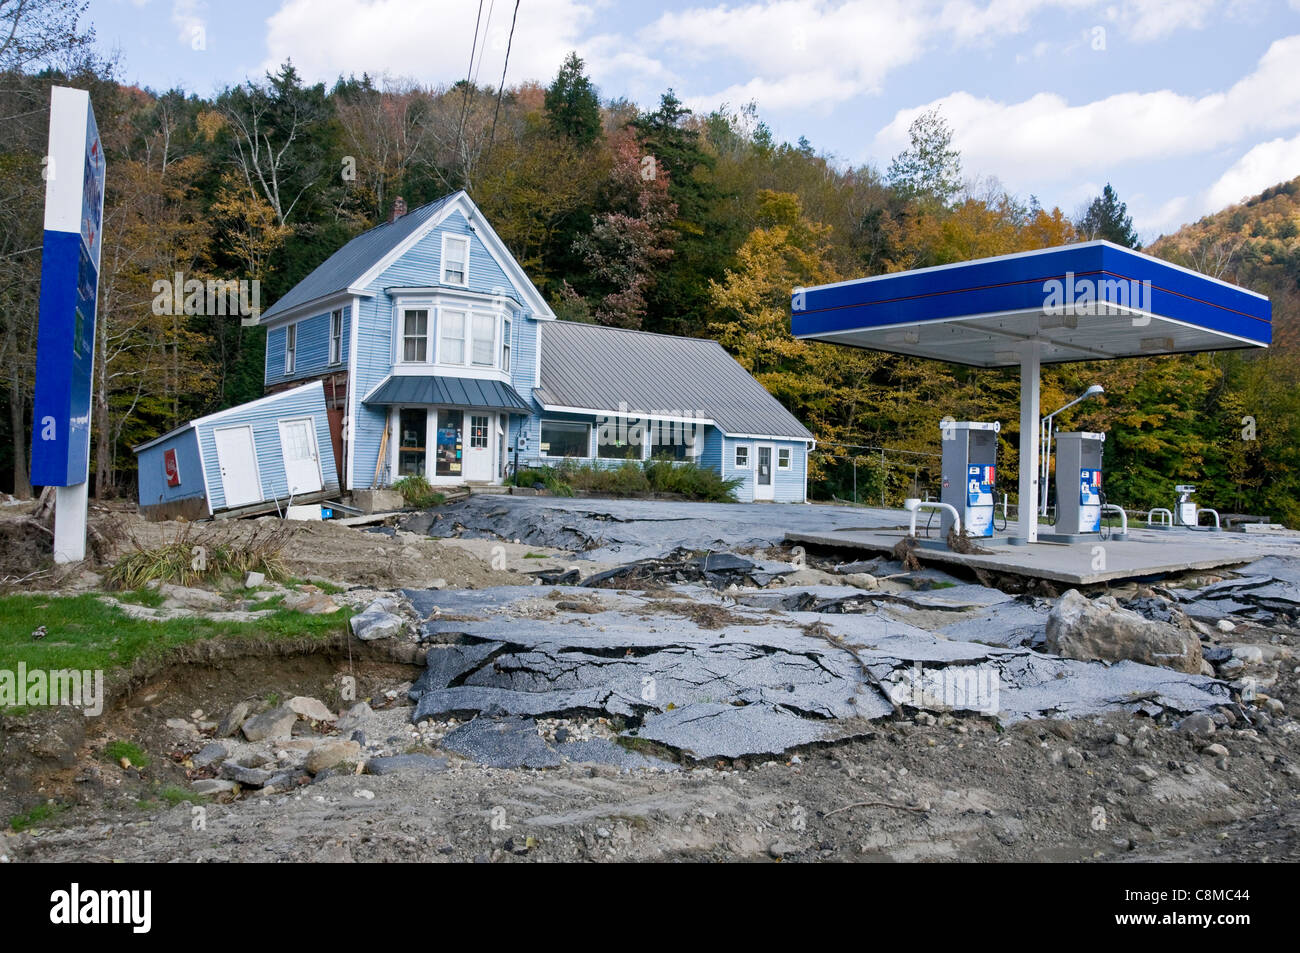 Destroyed gas station following tropical storm Irene In Vermont USA Autumn 2011 - Stock Image